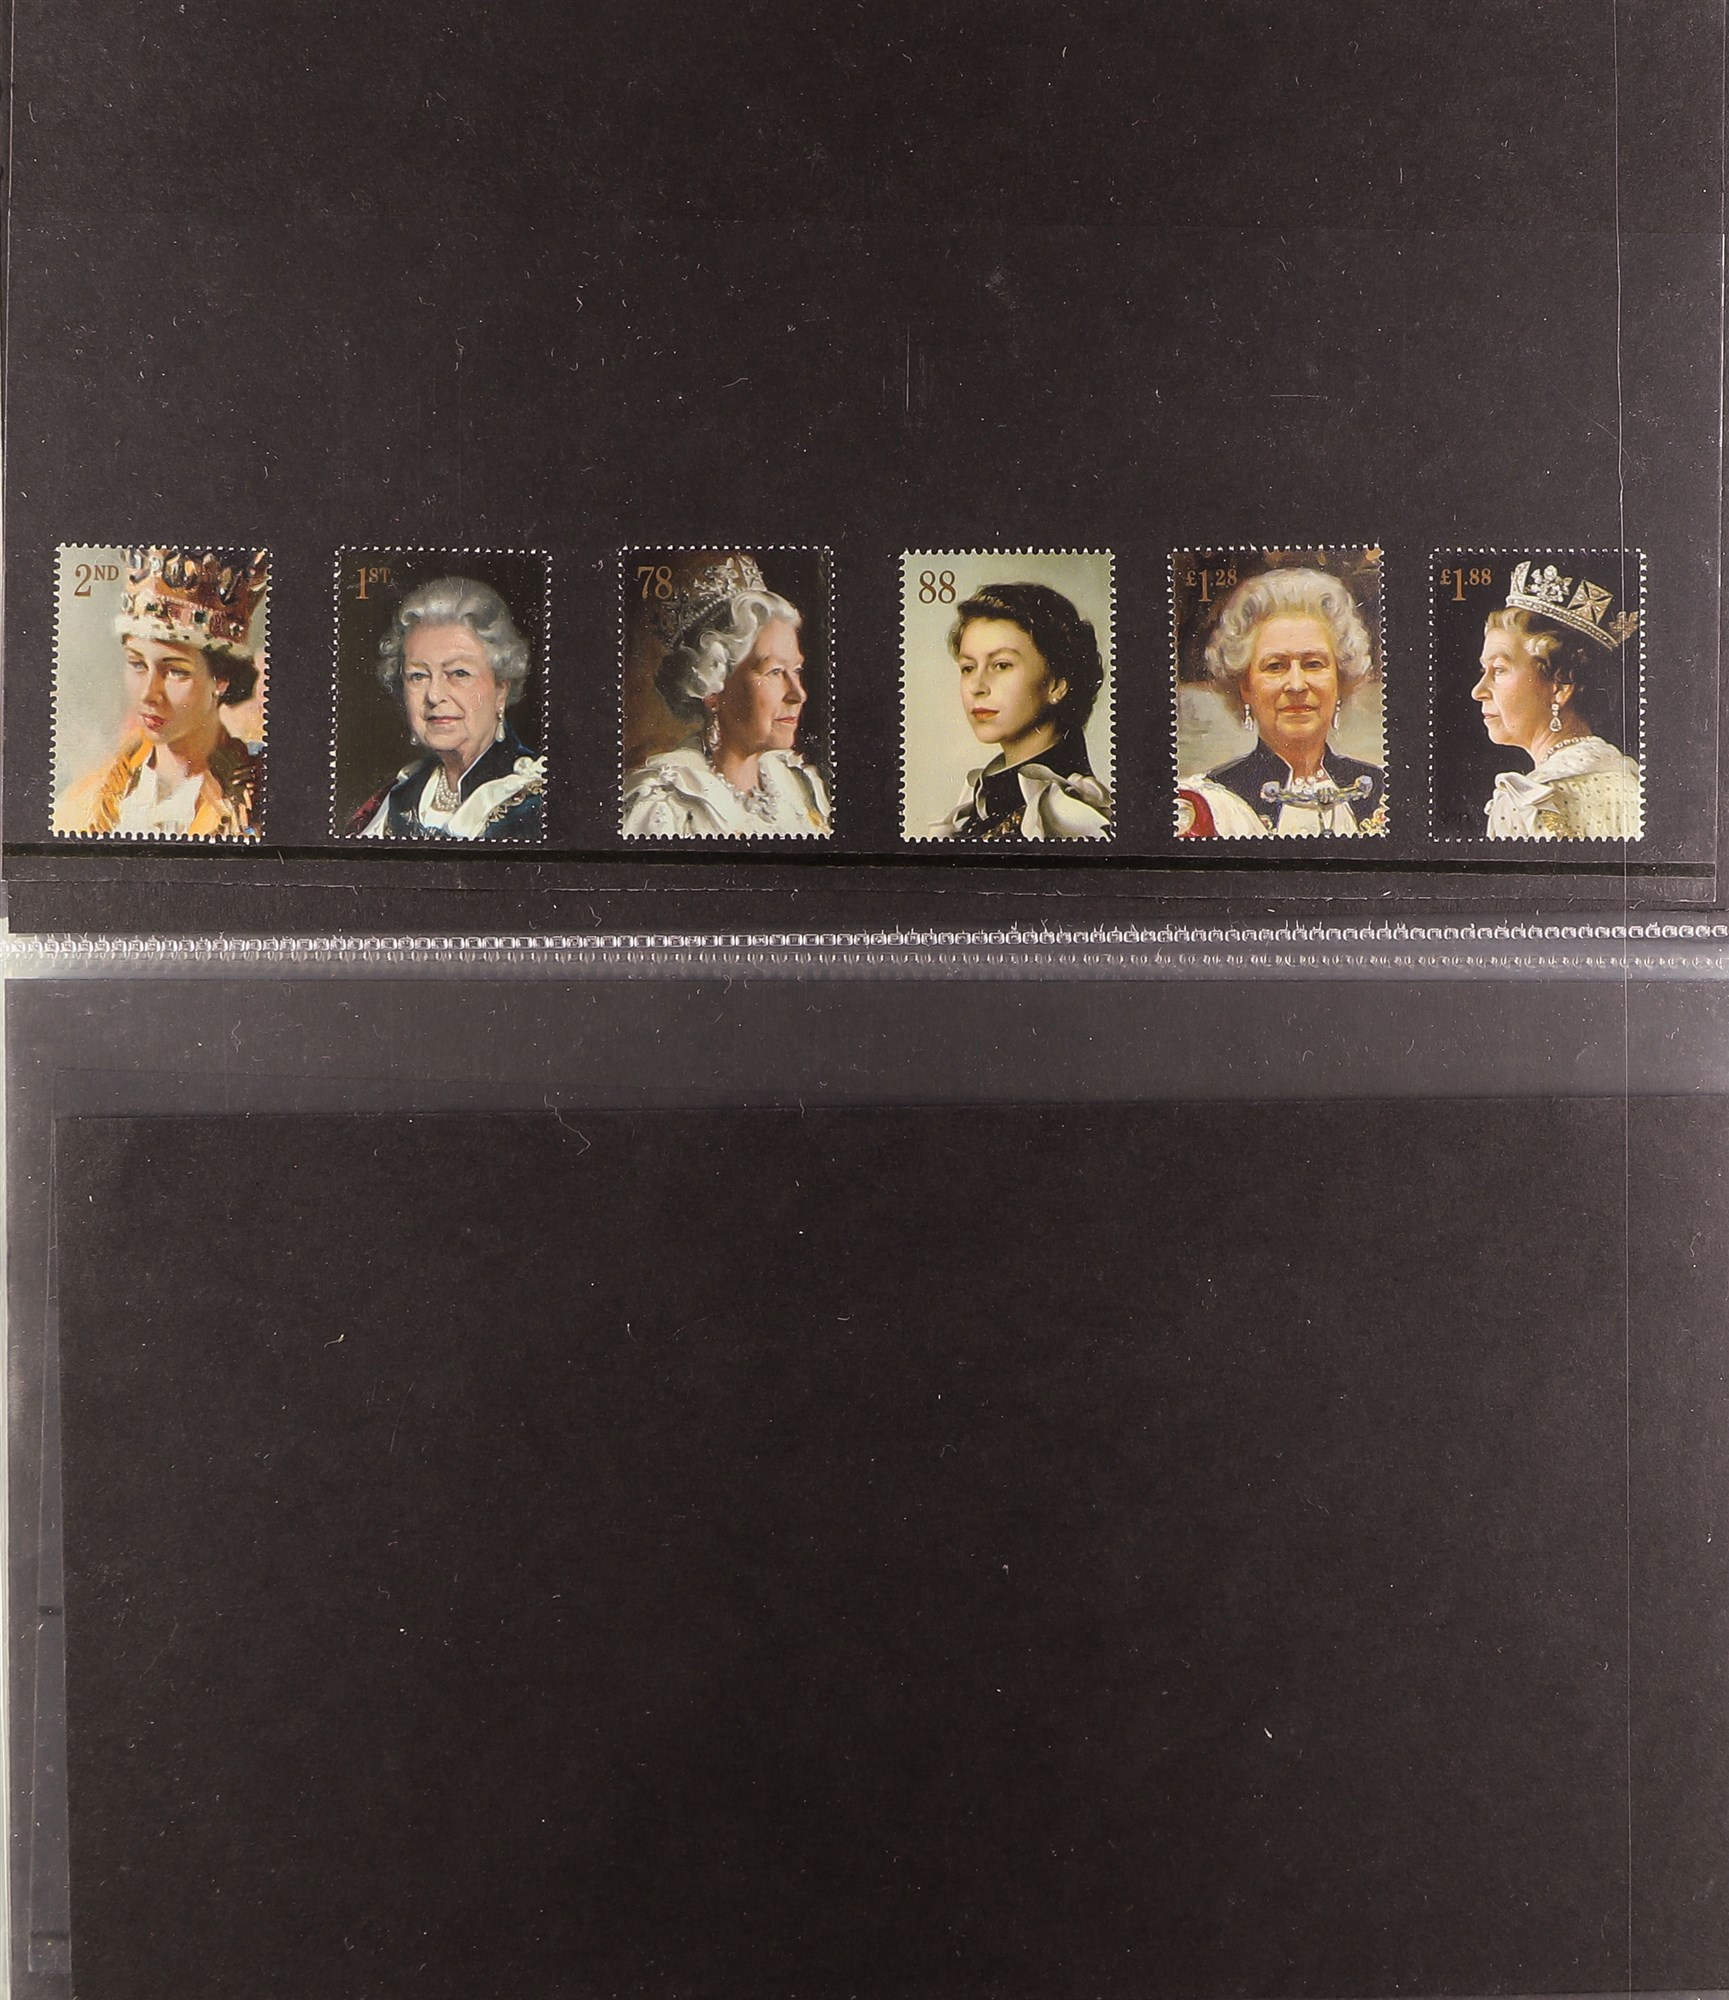 GB.ELIZABETH II 2013 - 2020 COMPREHENSIVE MINT COLLECTION which includes the commemorative stamp - Image 6 of 8